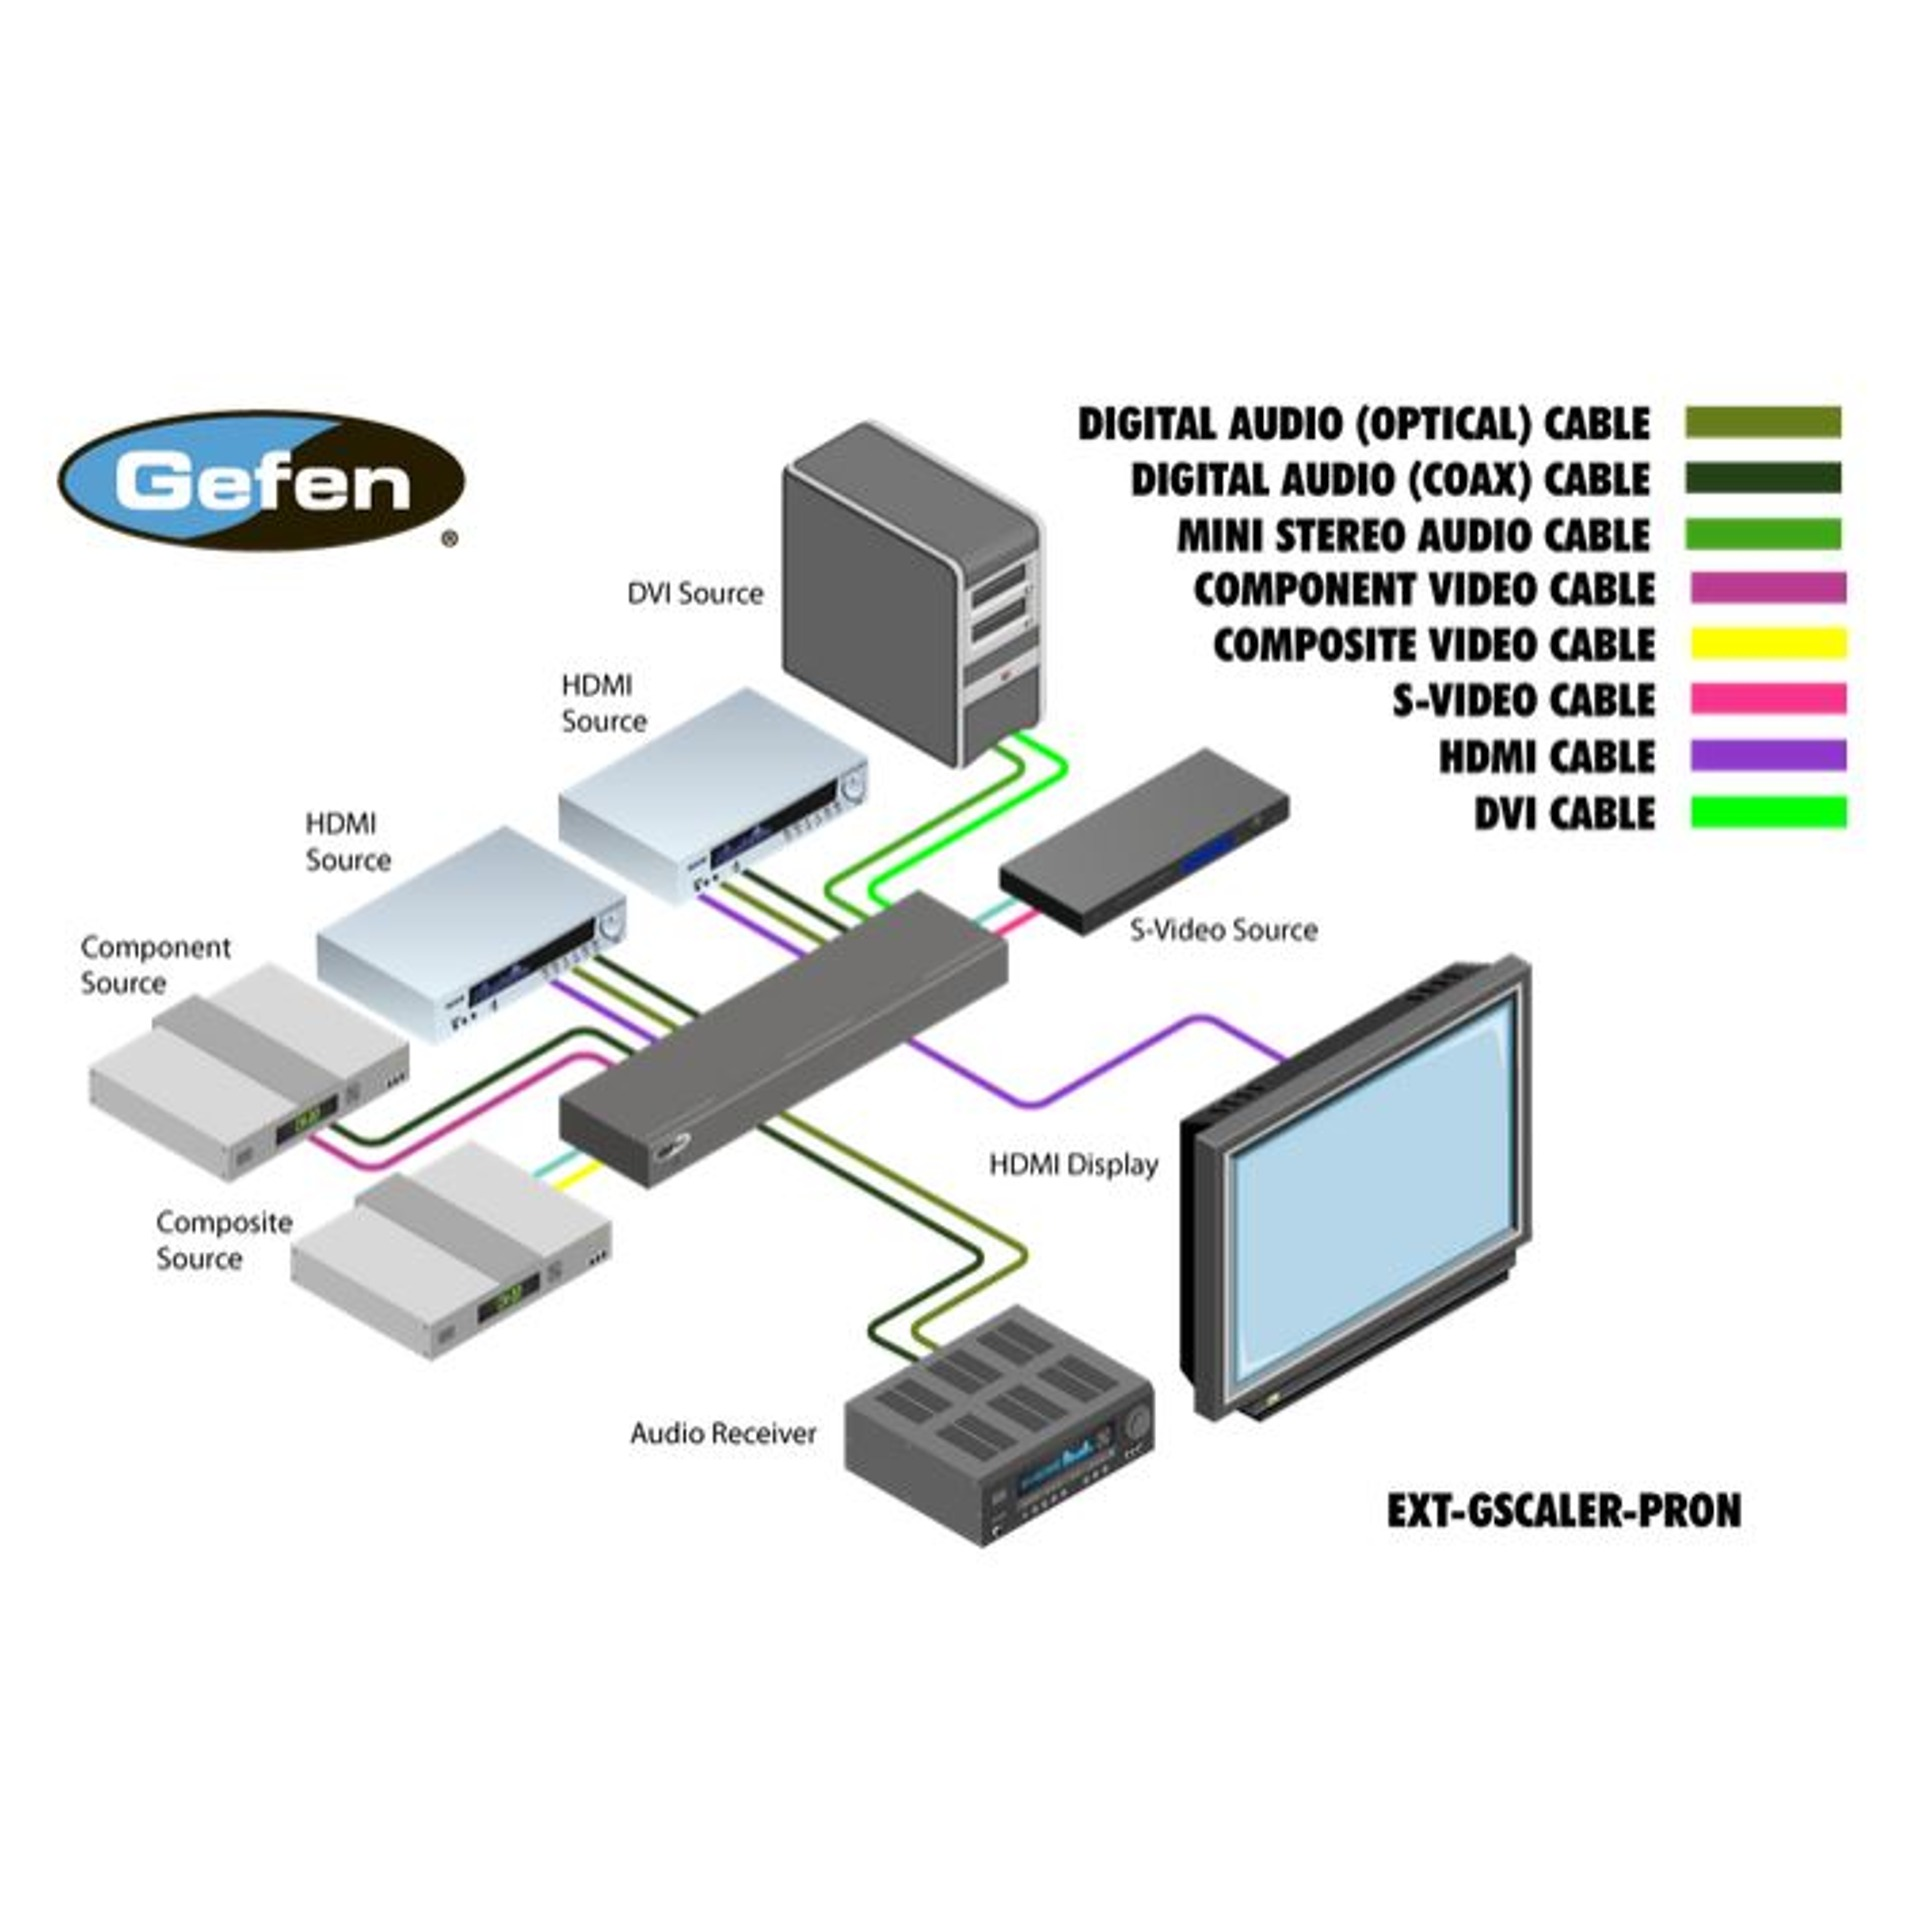 EXT-GSCALER-PRON Scaler & Switcher Gefen - BellEquip